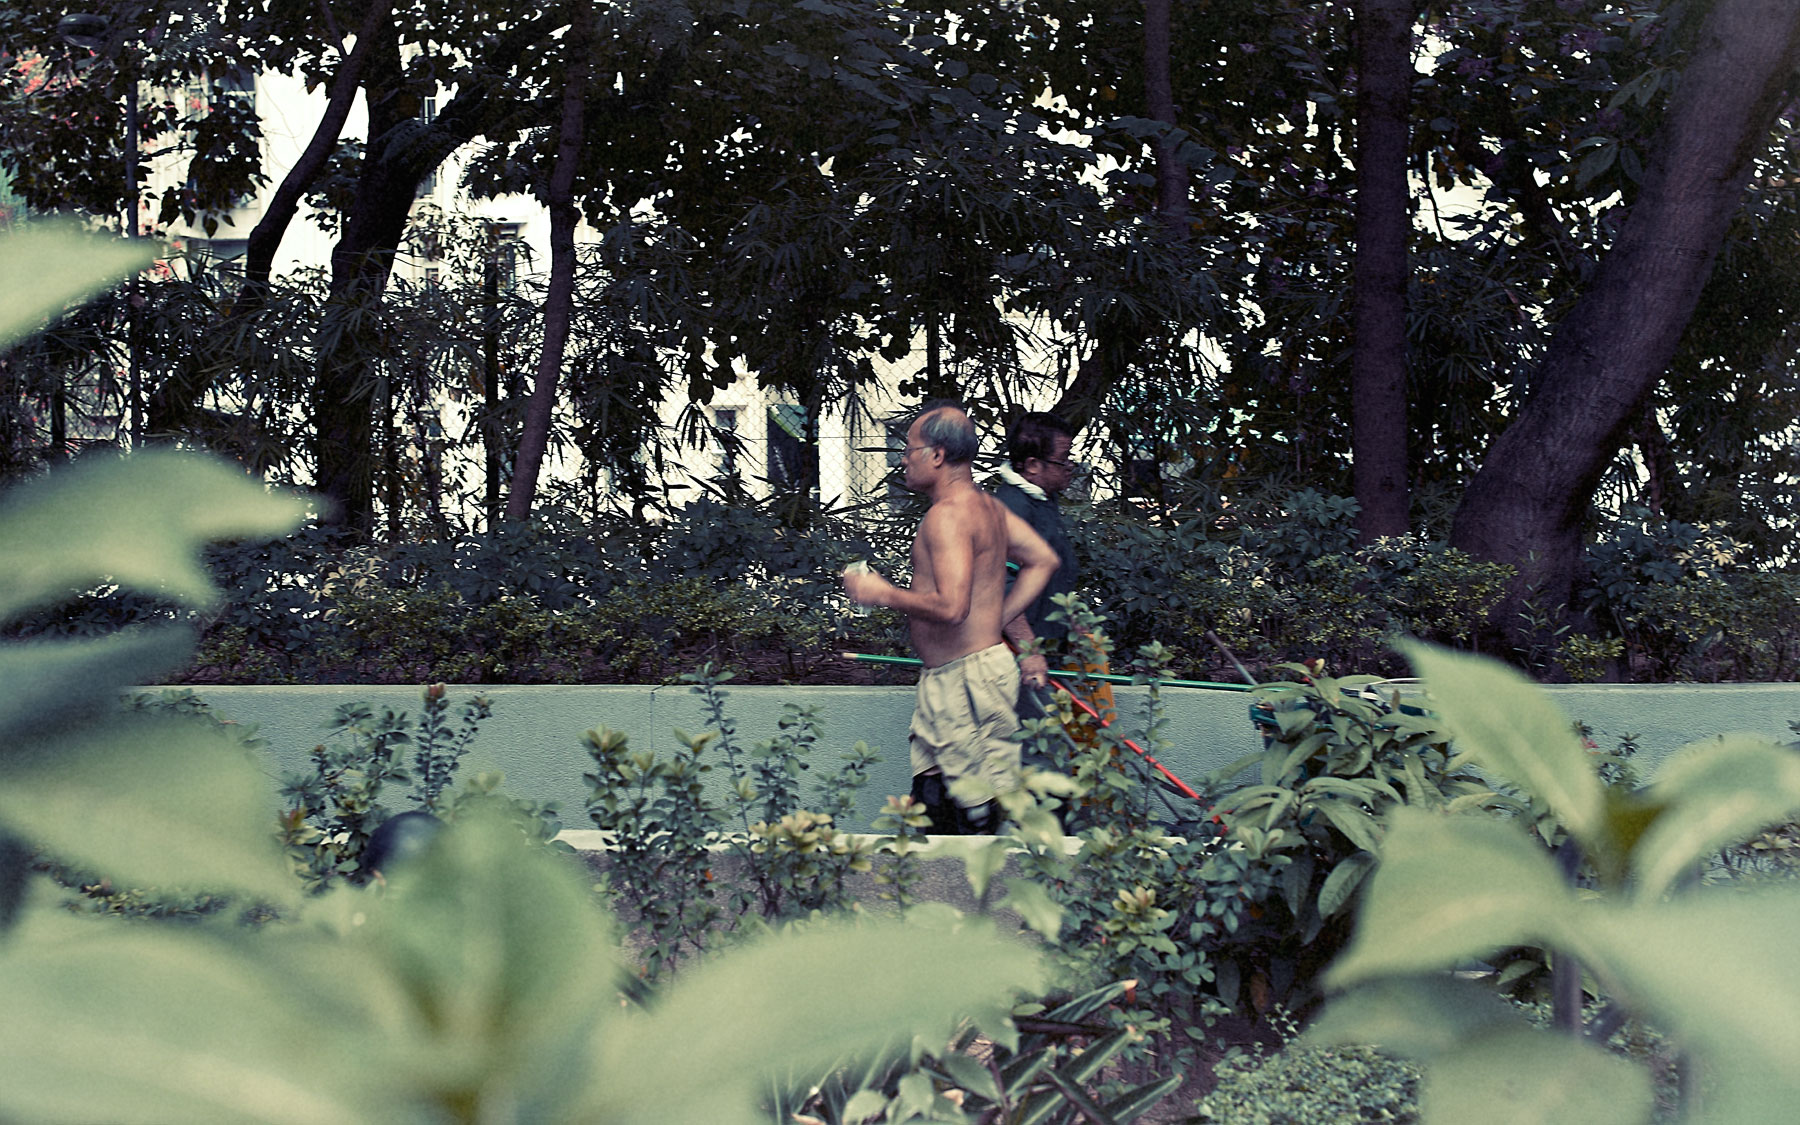 Good Boy Wolf Photographer, filmic landscape,  Chinese man running in a park with his top off